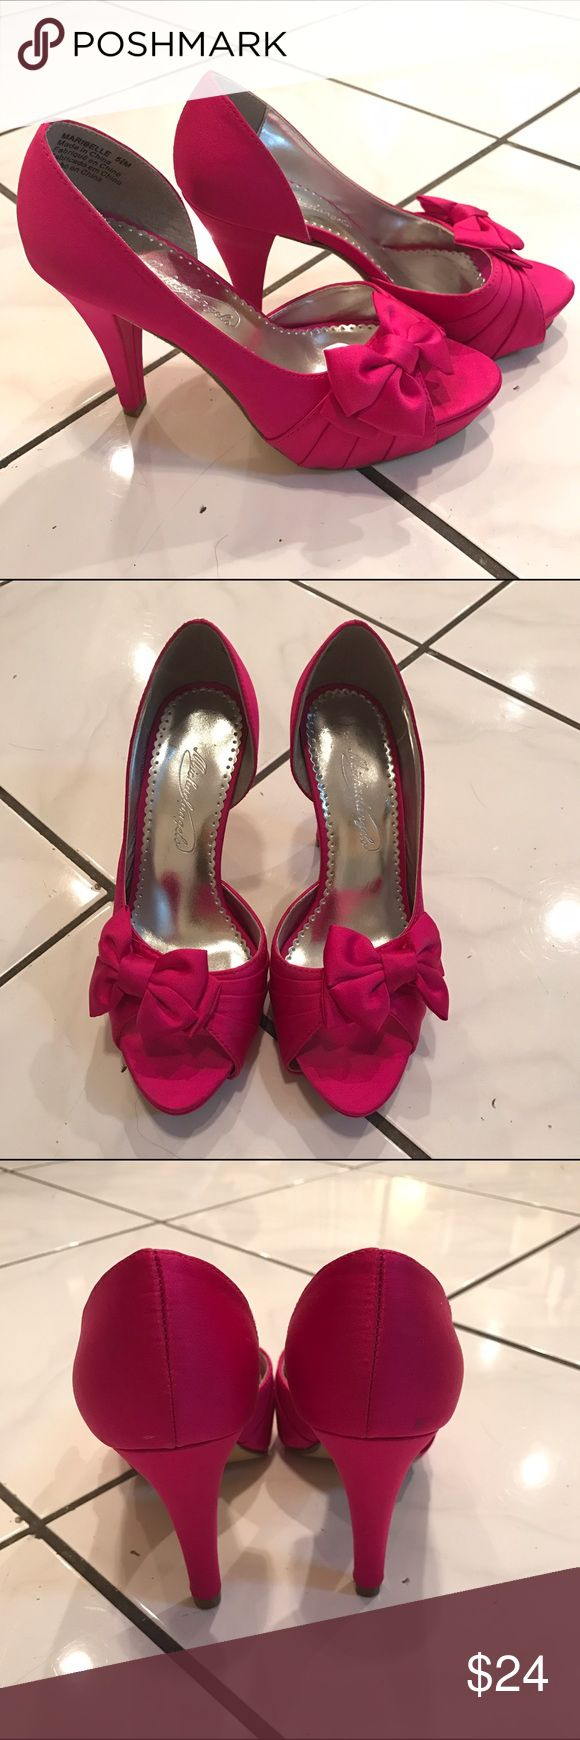 "Michaelangelo ""maribelle"" hot pink satin pumps Michaelangelo ""Maribelle"" hot pink satin pumps. Good condition. Only worn once. Size 5.5. Embellished with bow on toe. Shoes Heels"